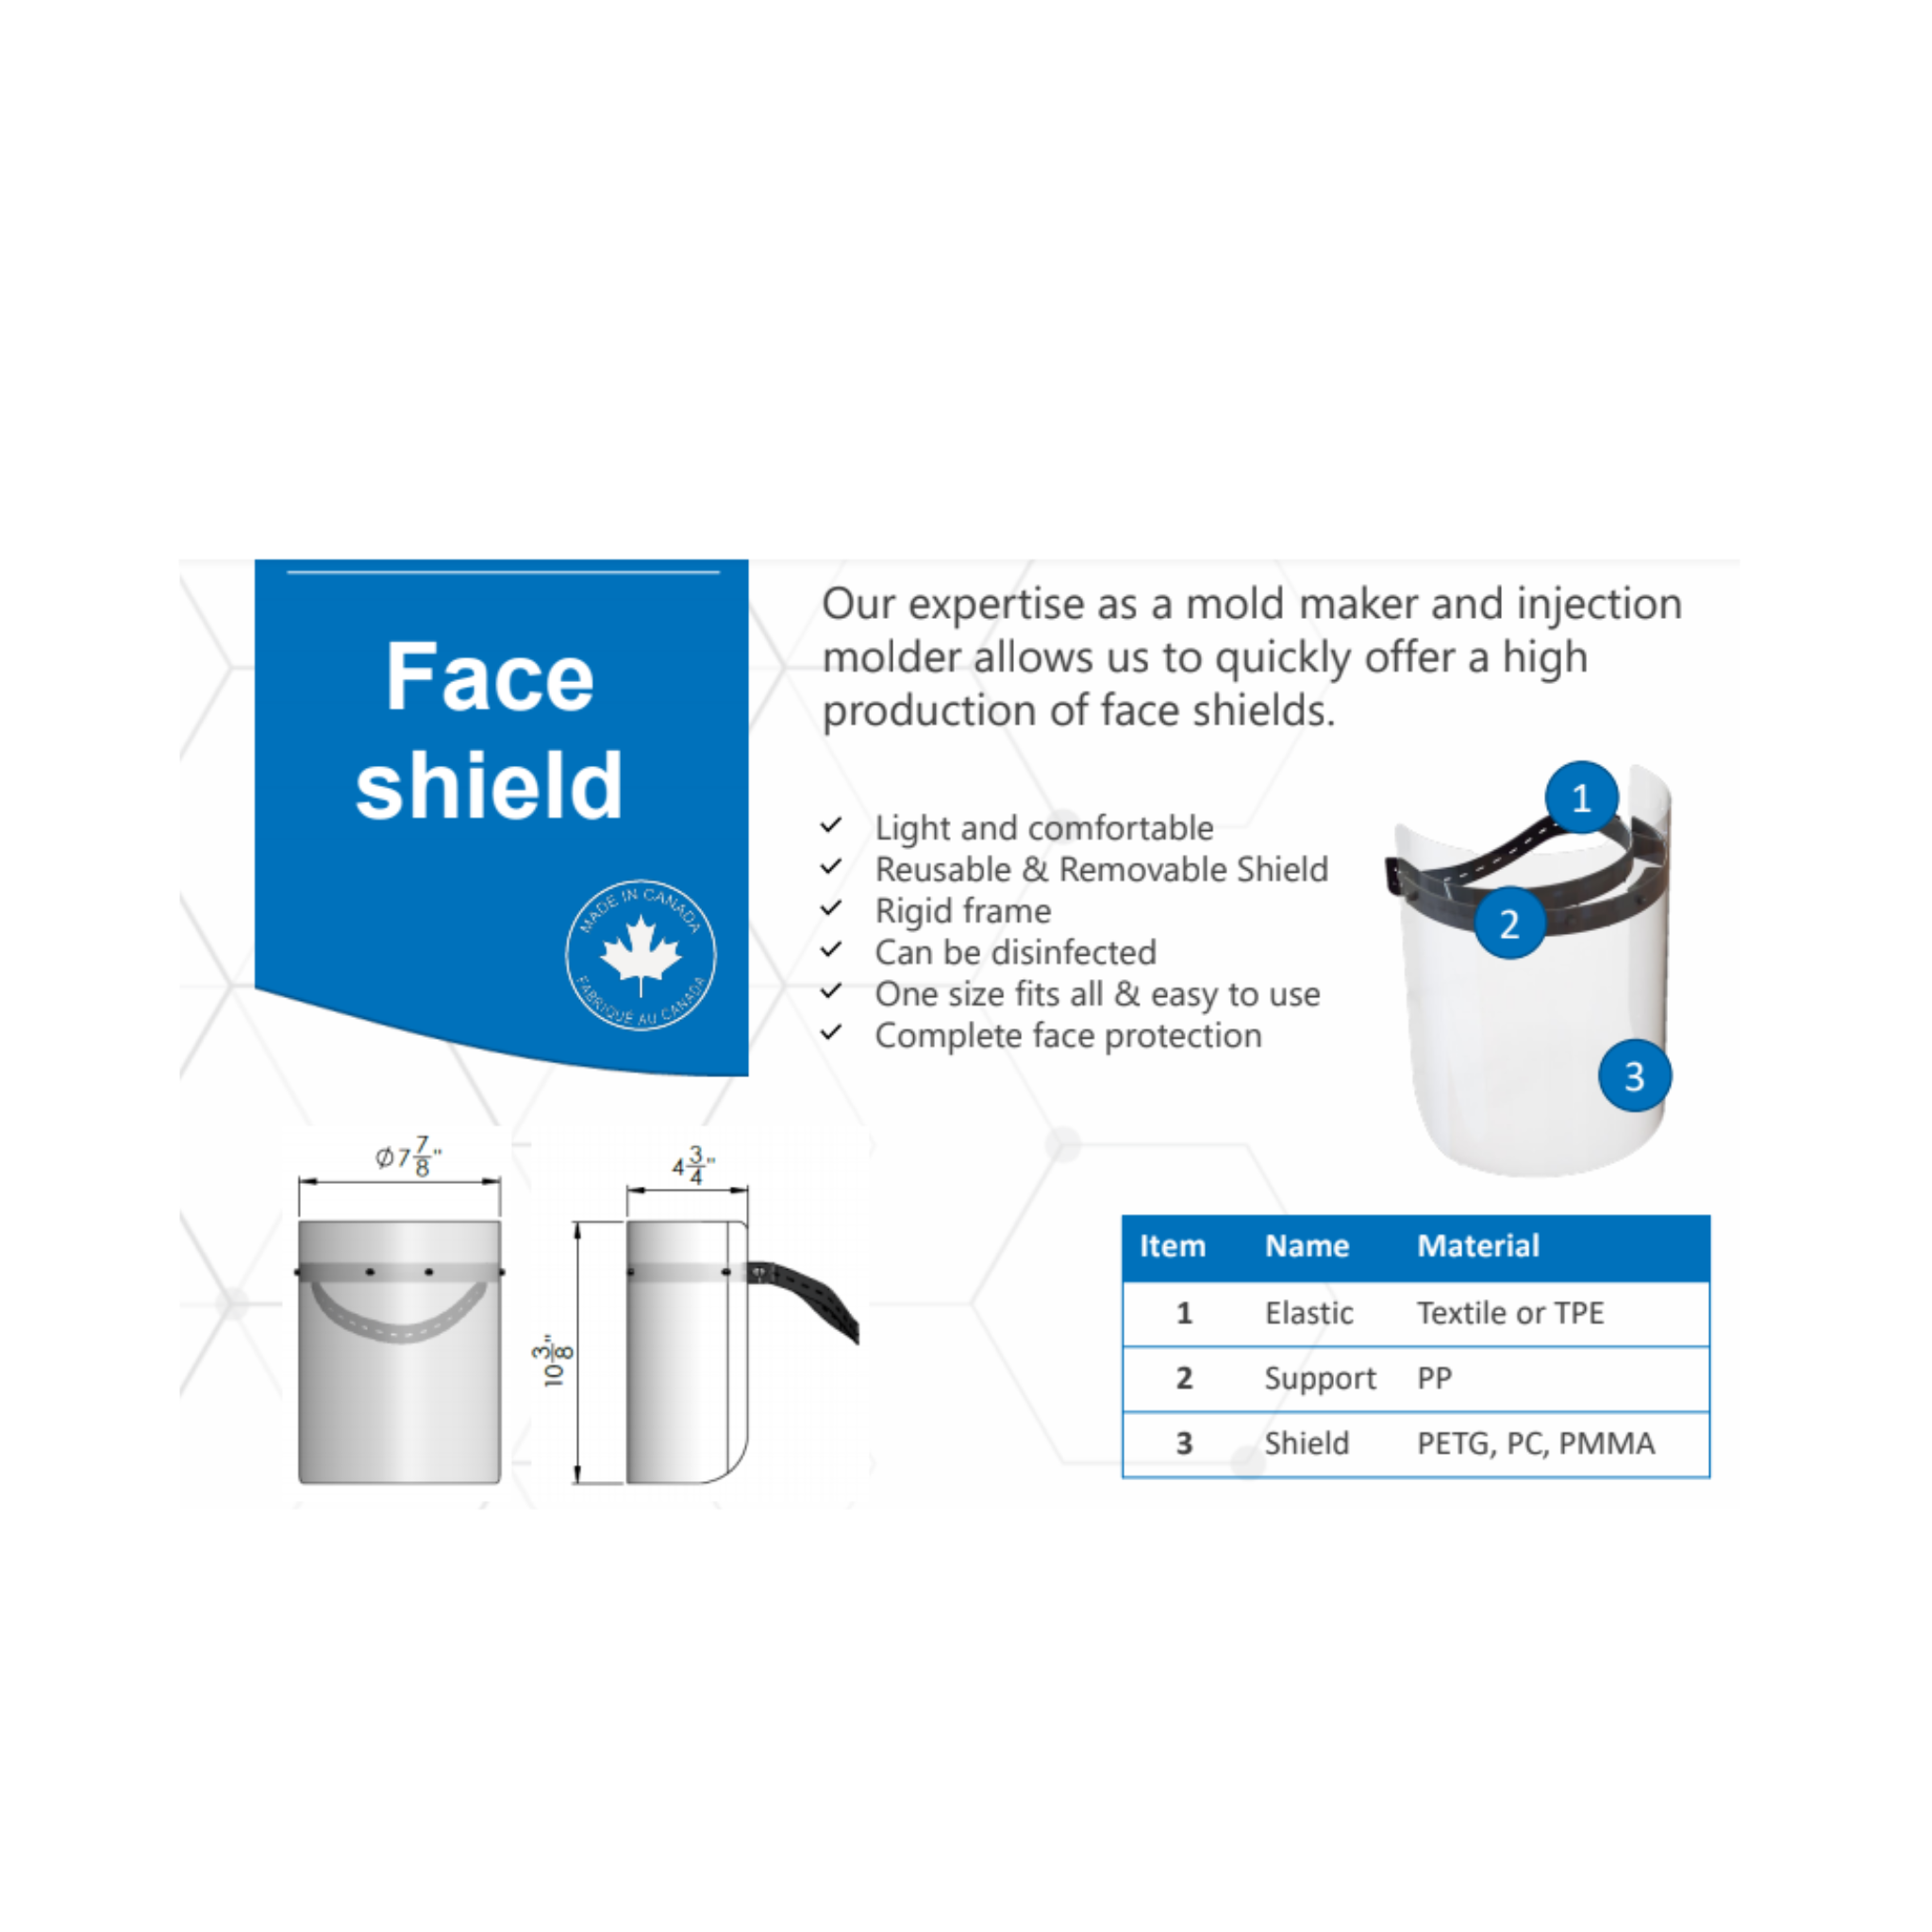 Face Shield with removable and reusable shield Specificationsr